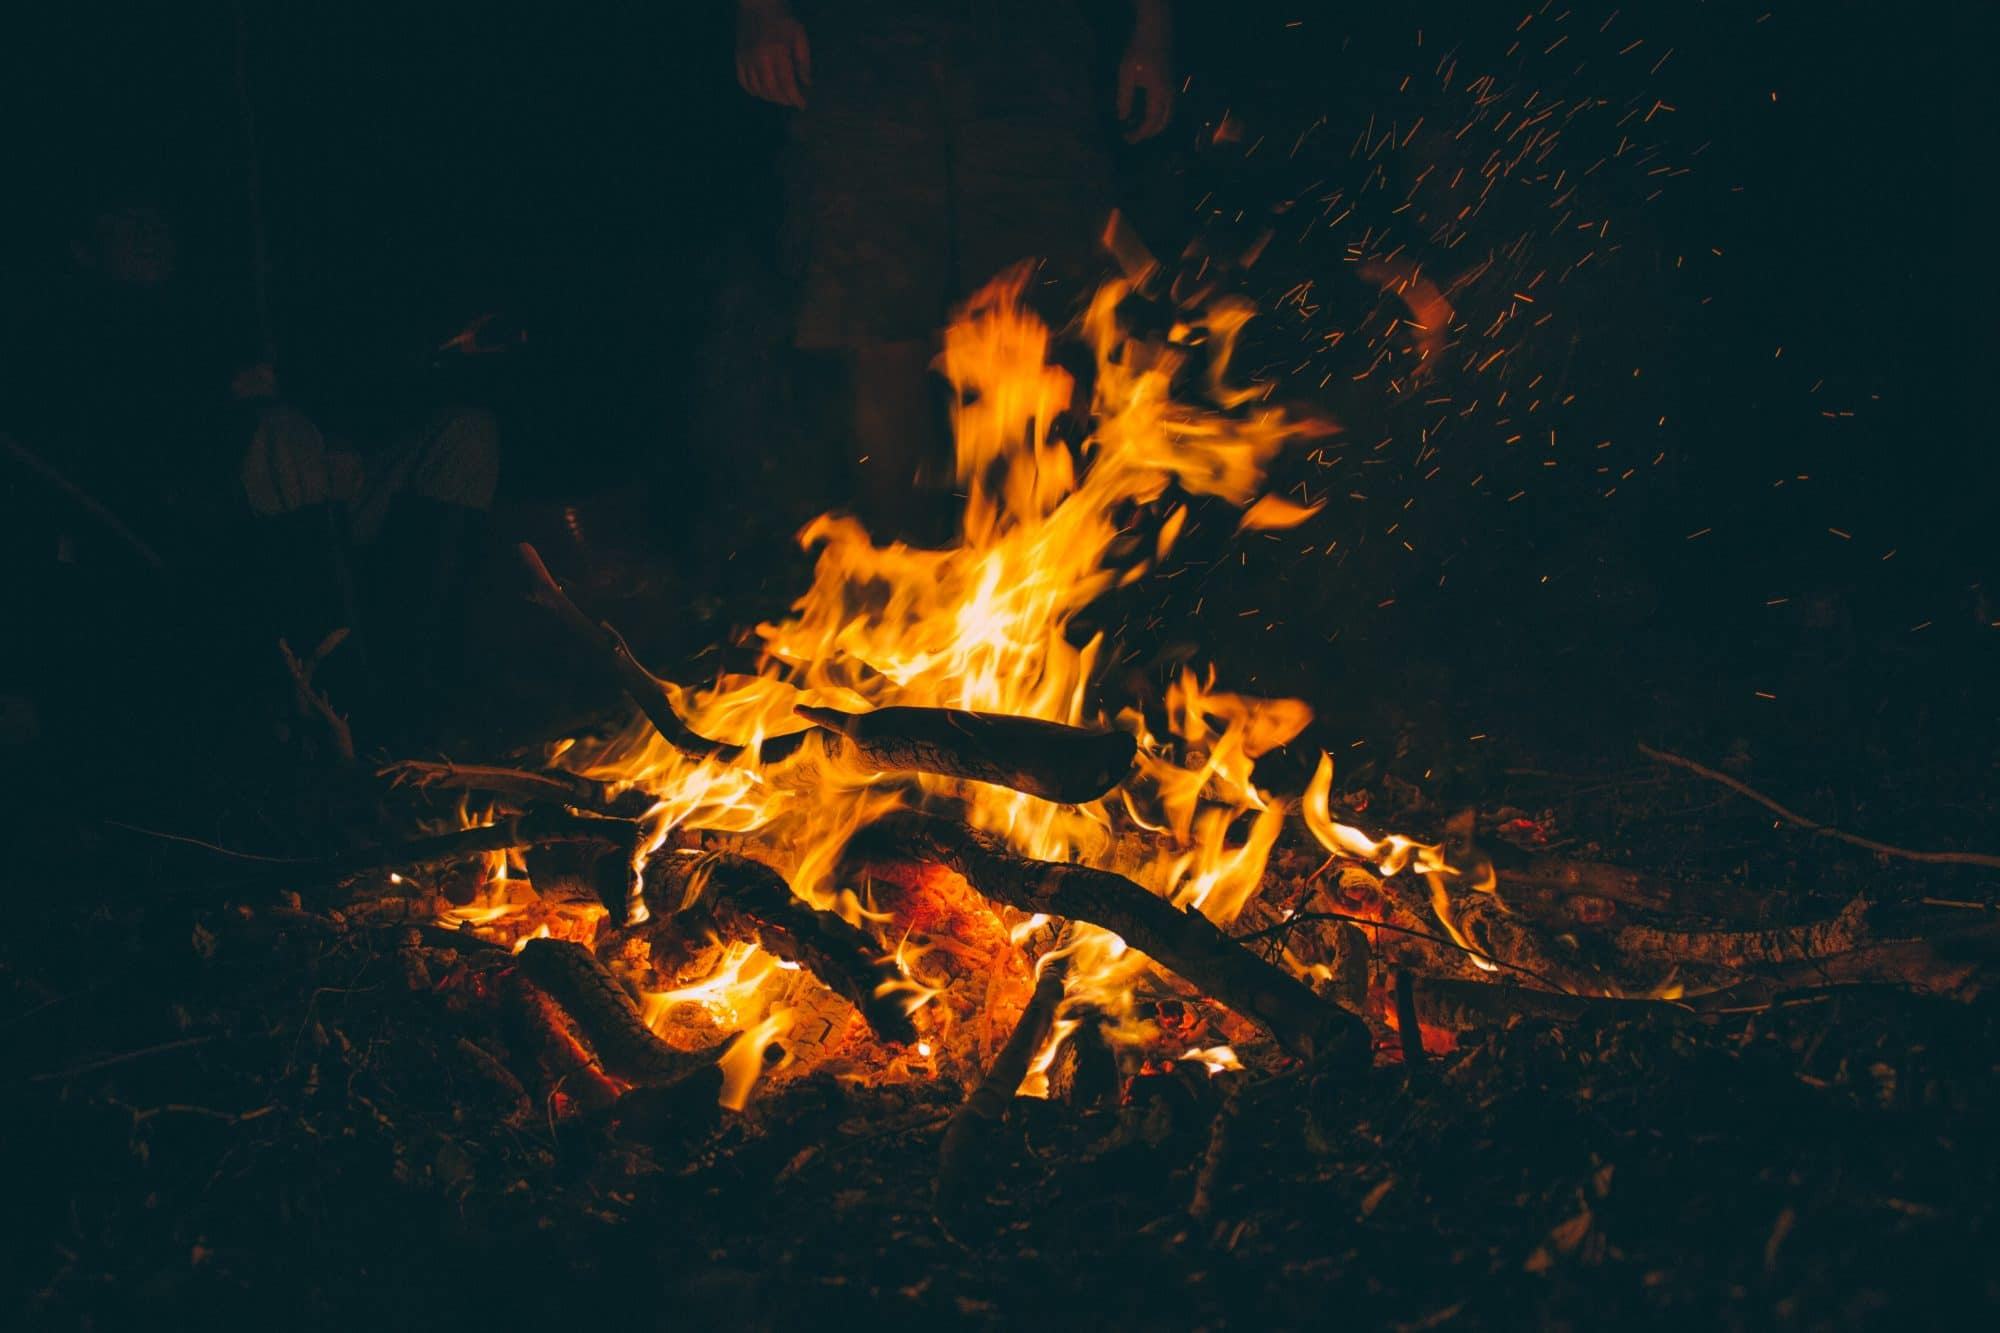 Building the Perfect Bonfire Night